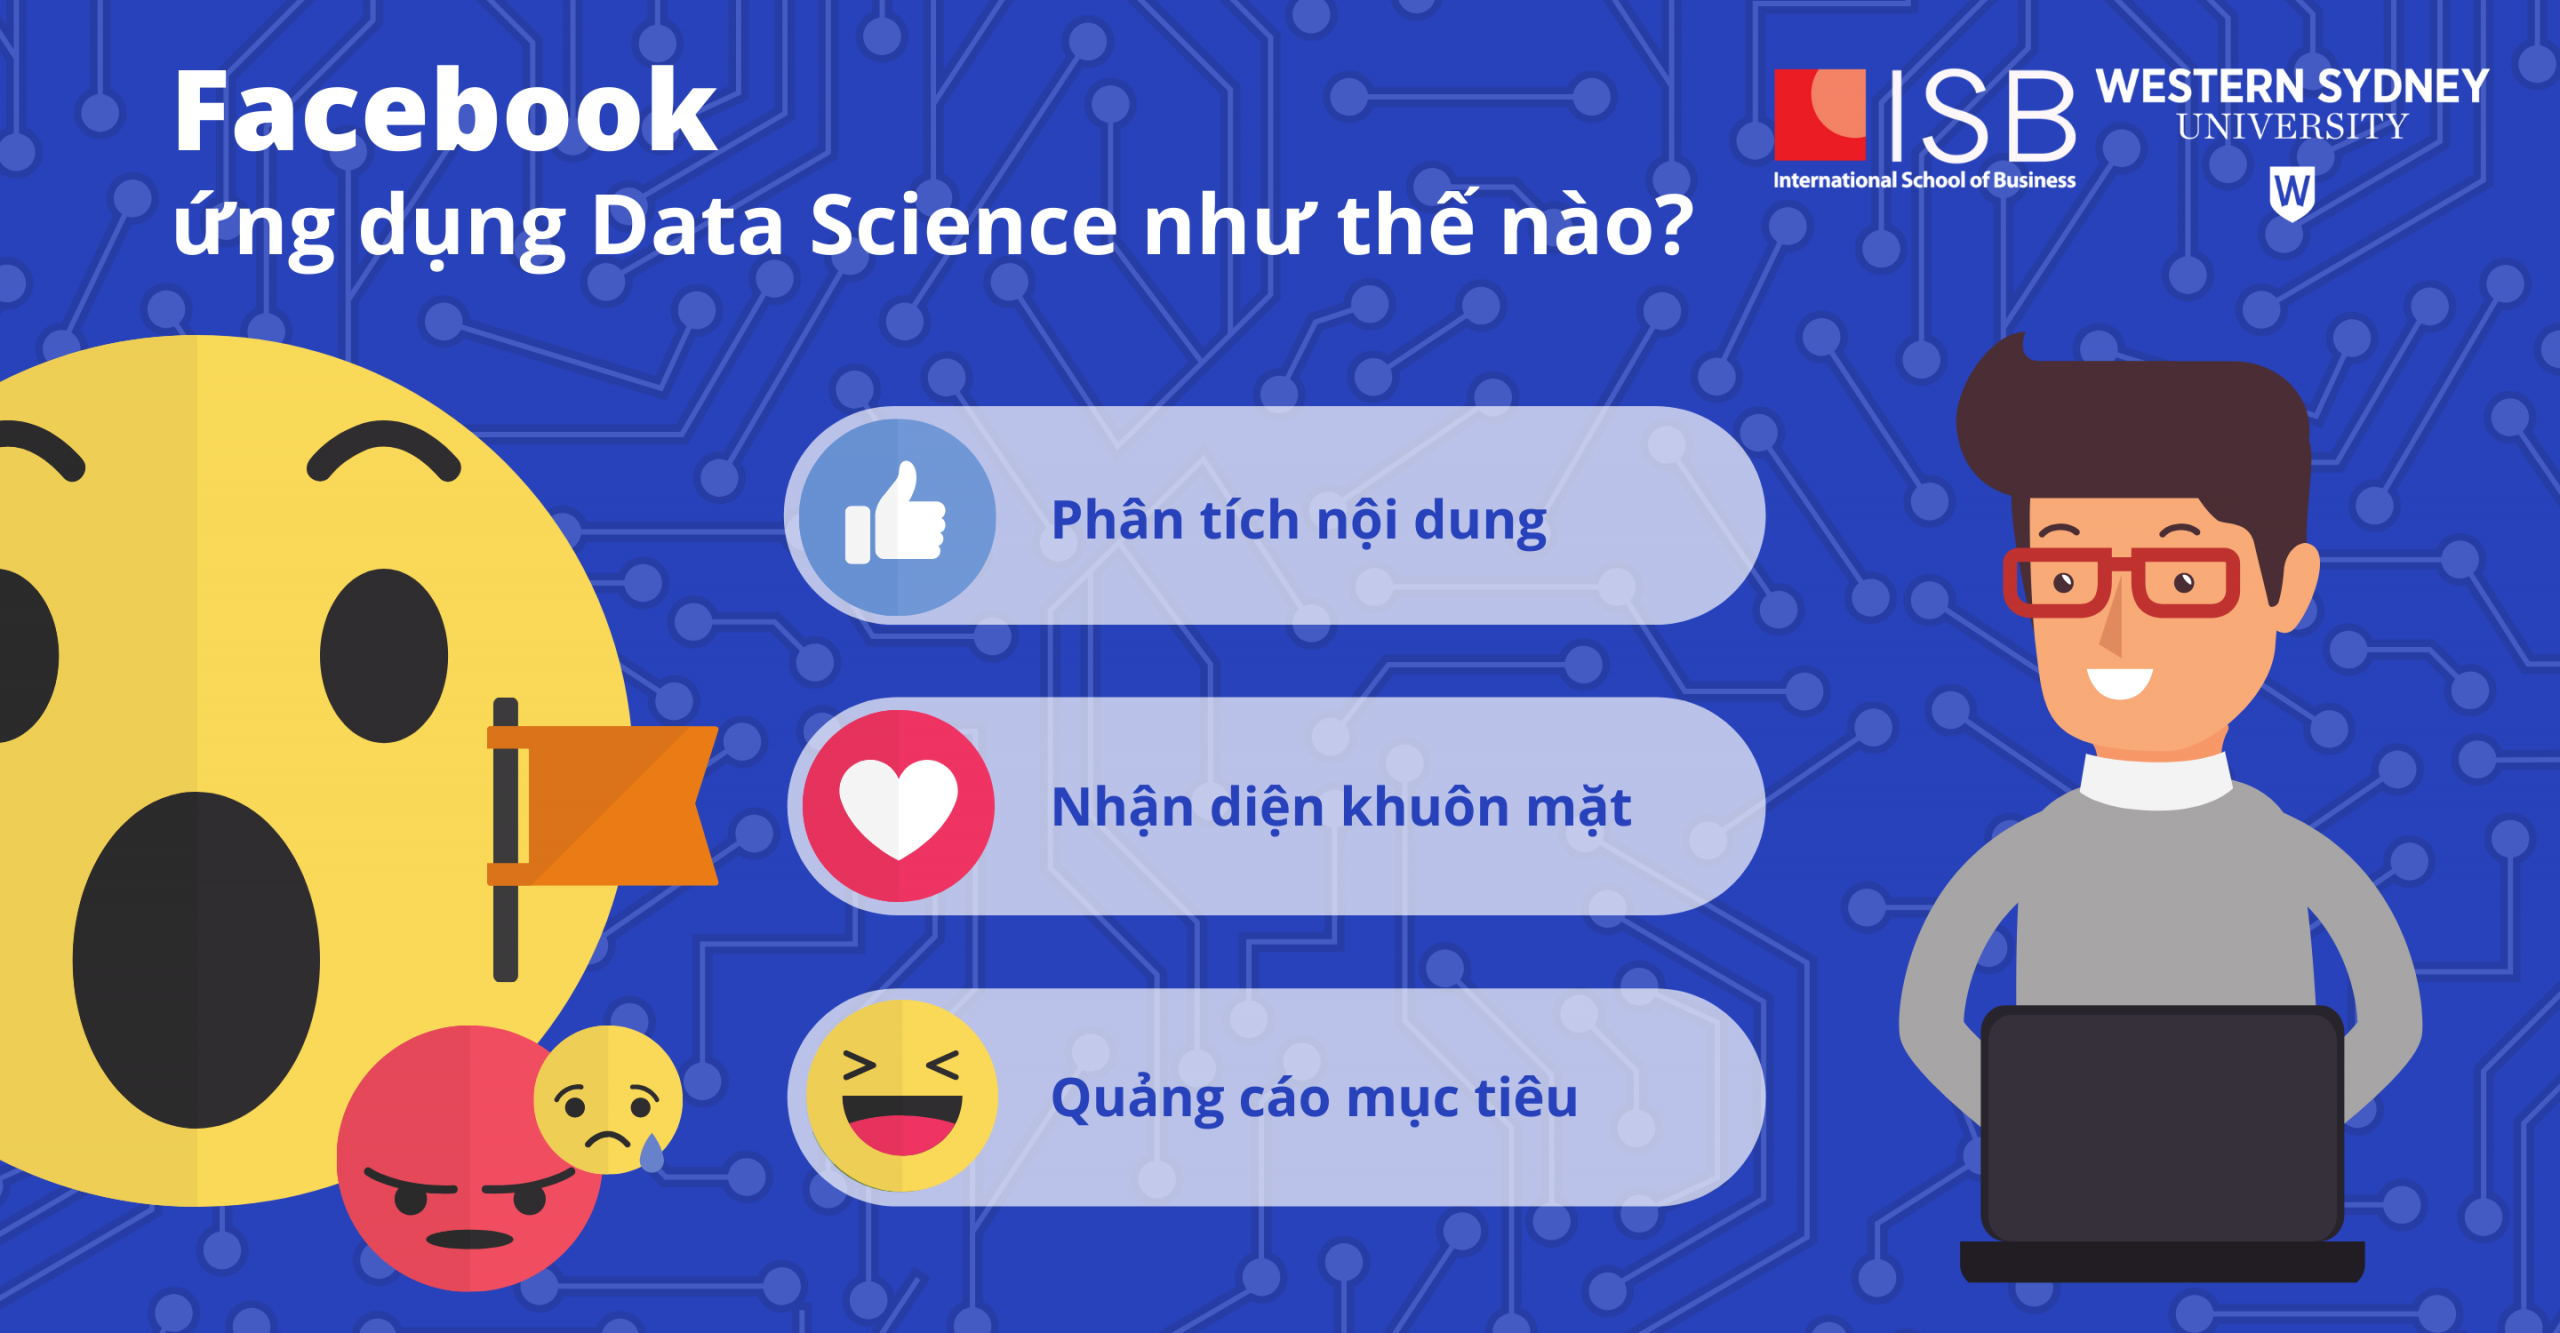 VienISB_Facebook-ung-dung-data-science-1